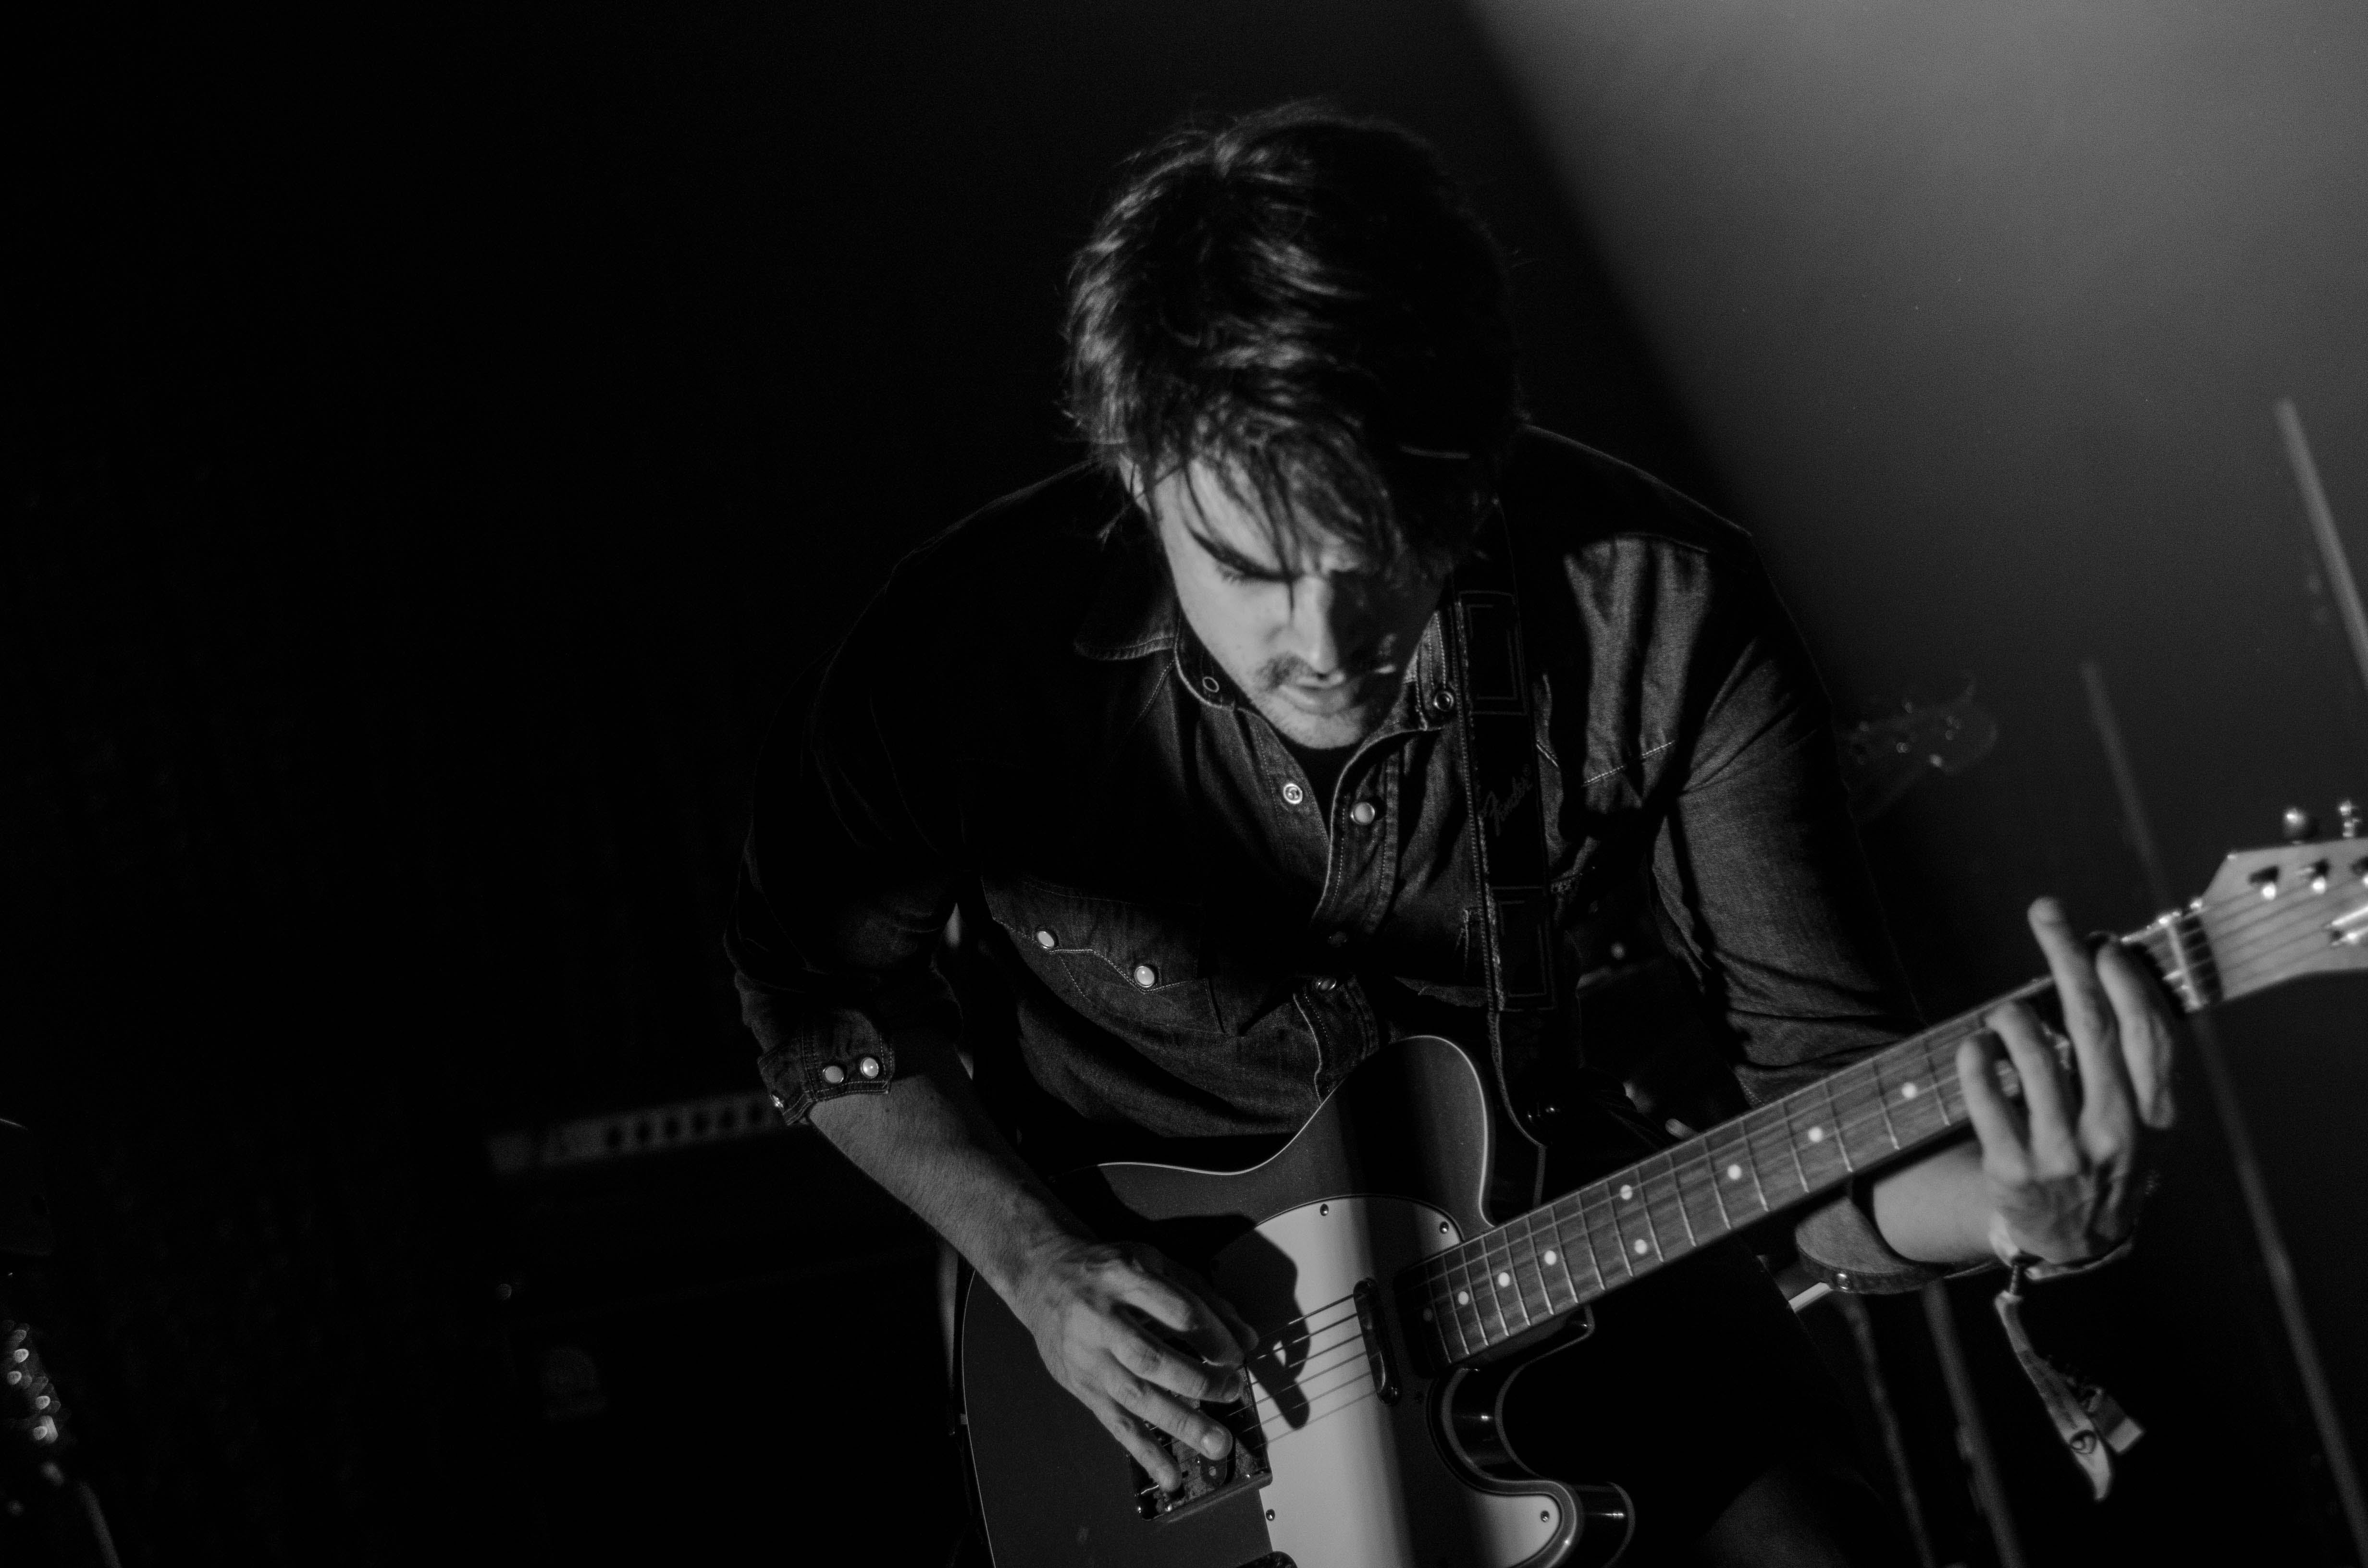 Grayscale Photo of Man Playing Electric Guitar